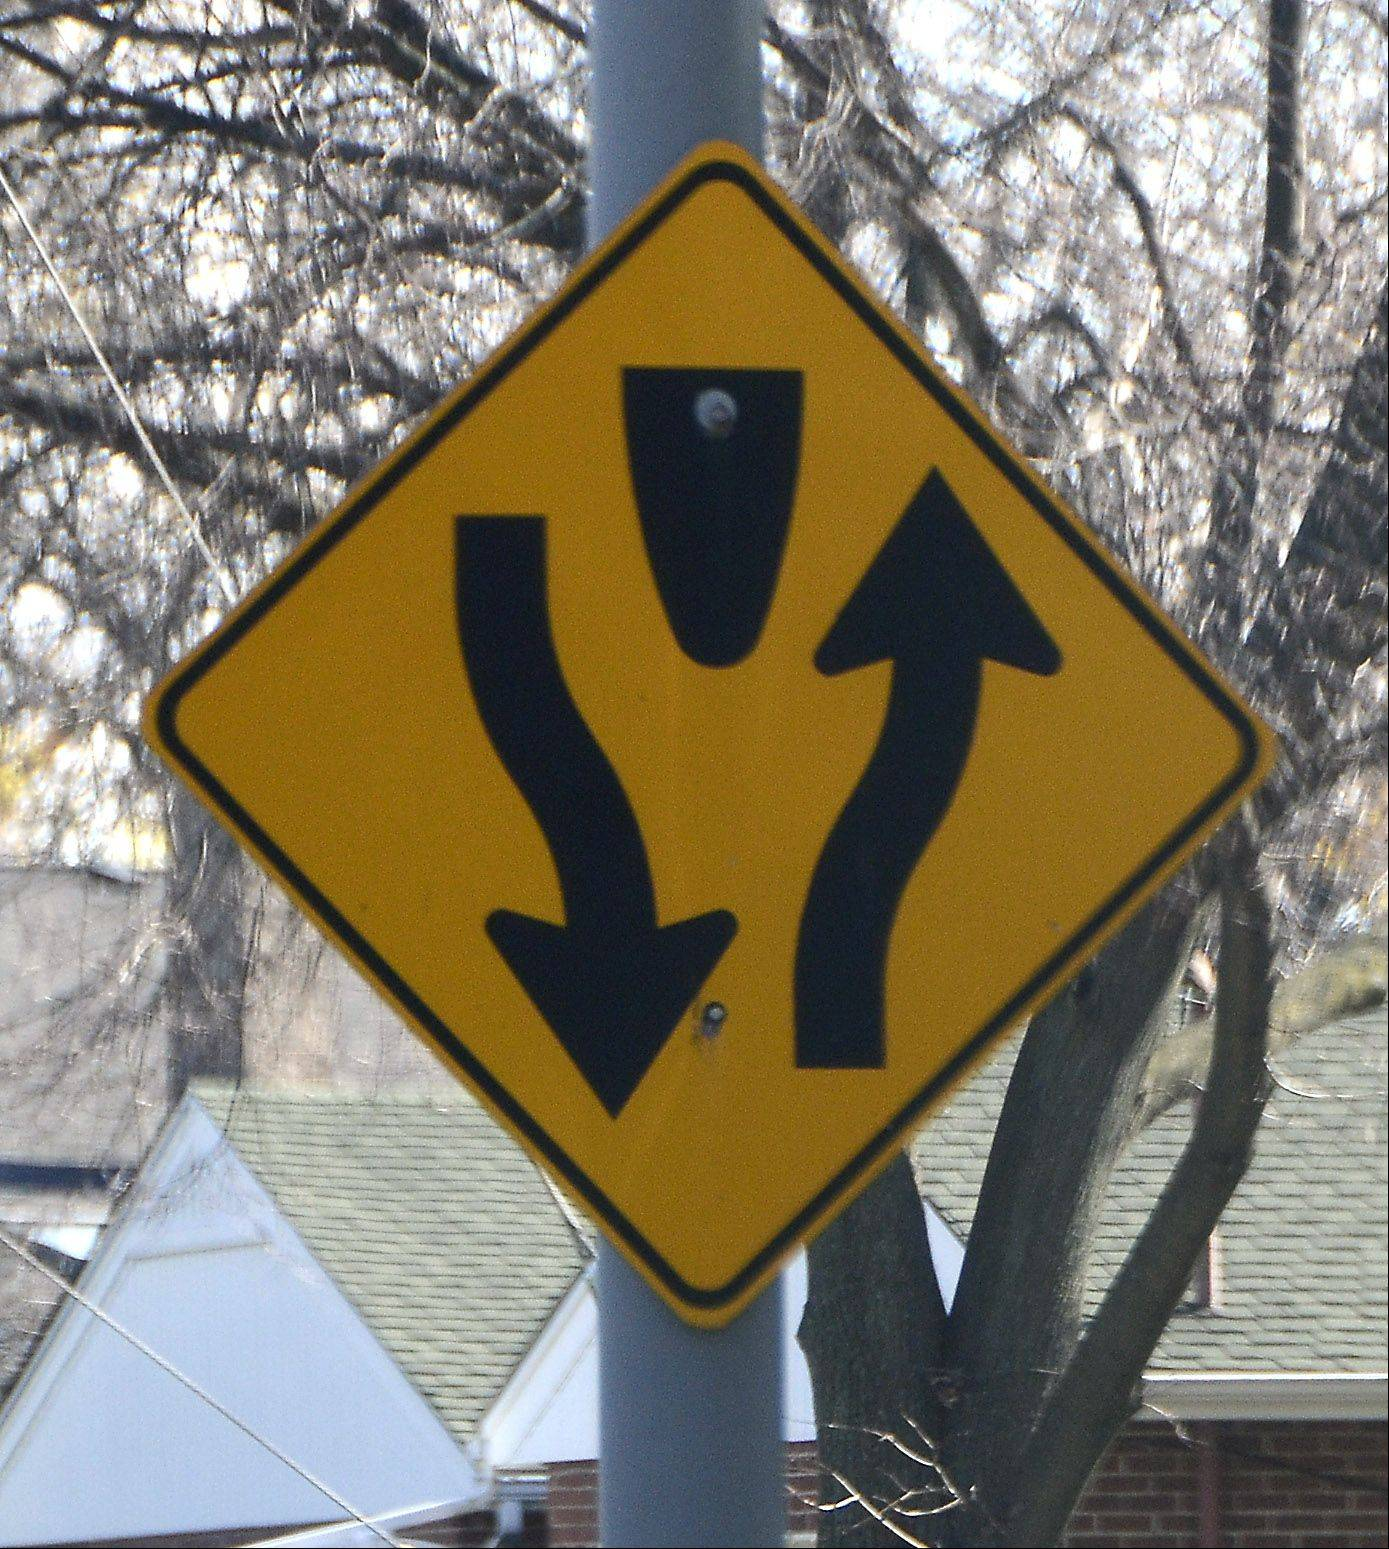 Know your signs. This one indicates a divided highway.